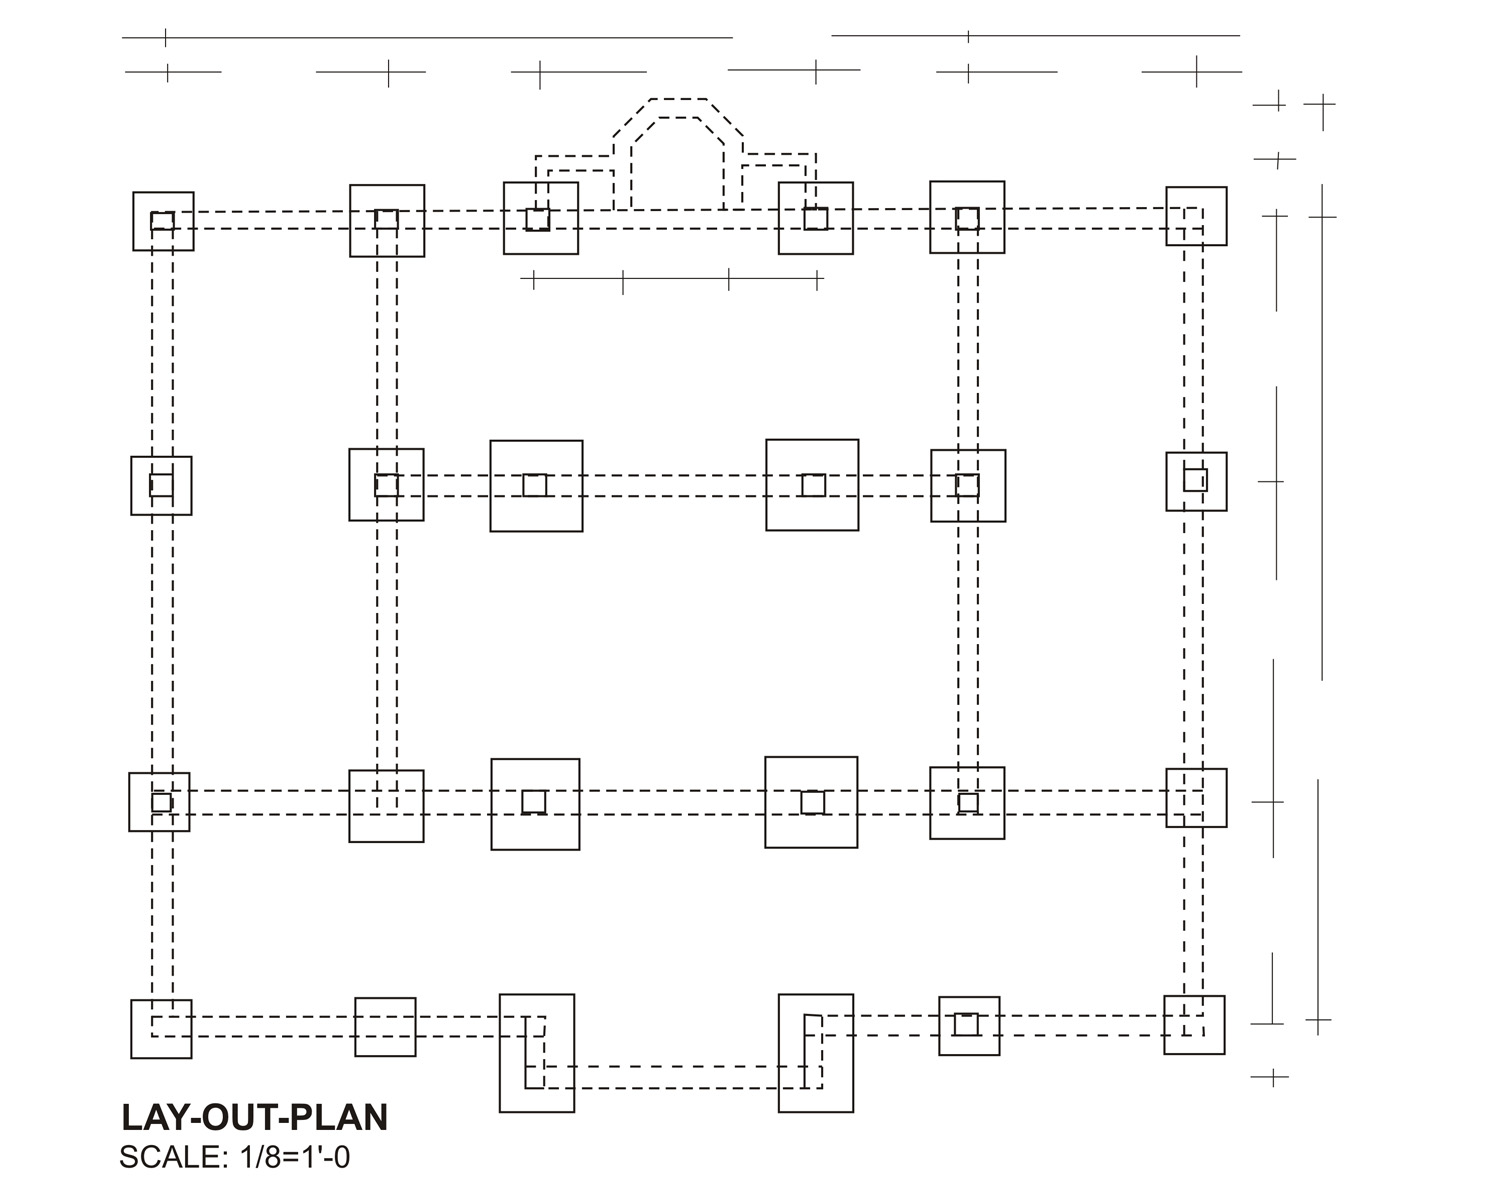 3Lay Out Plan